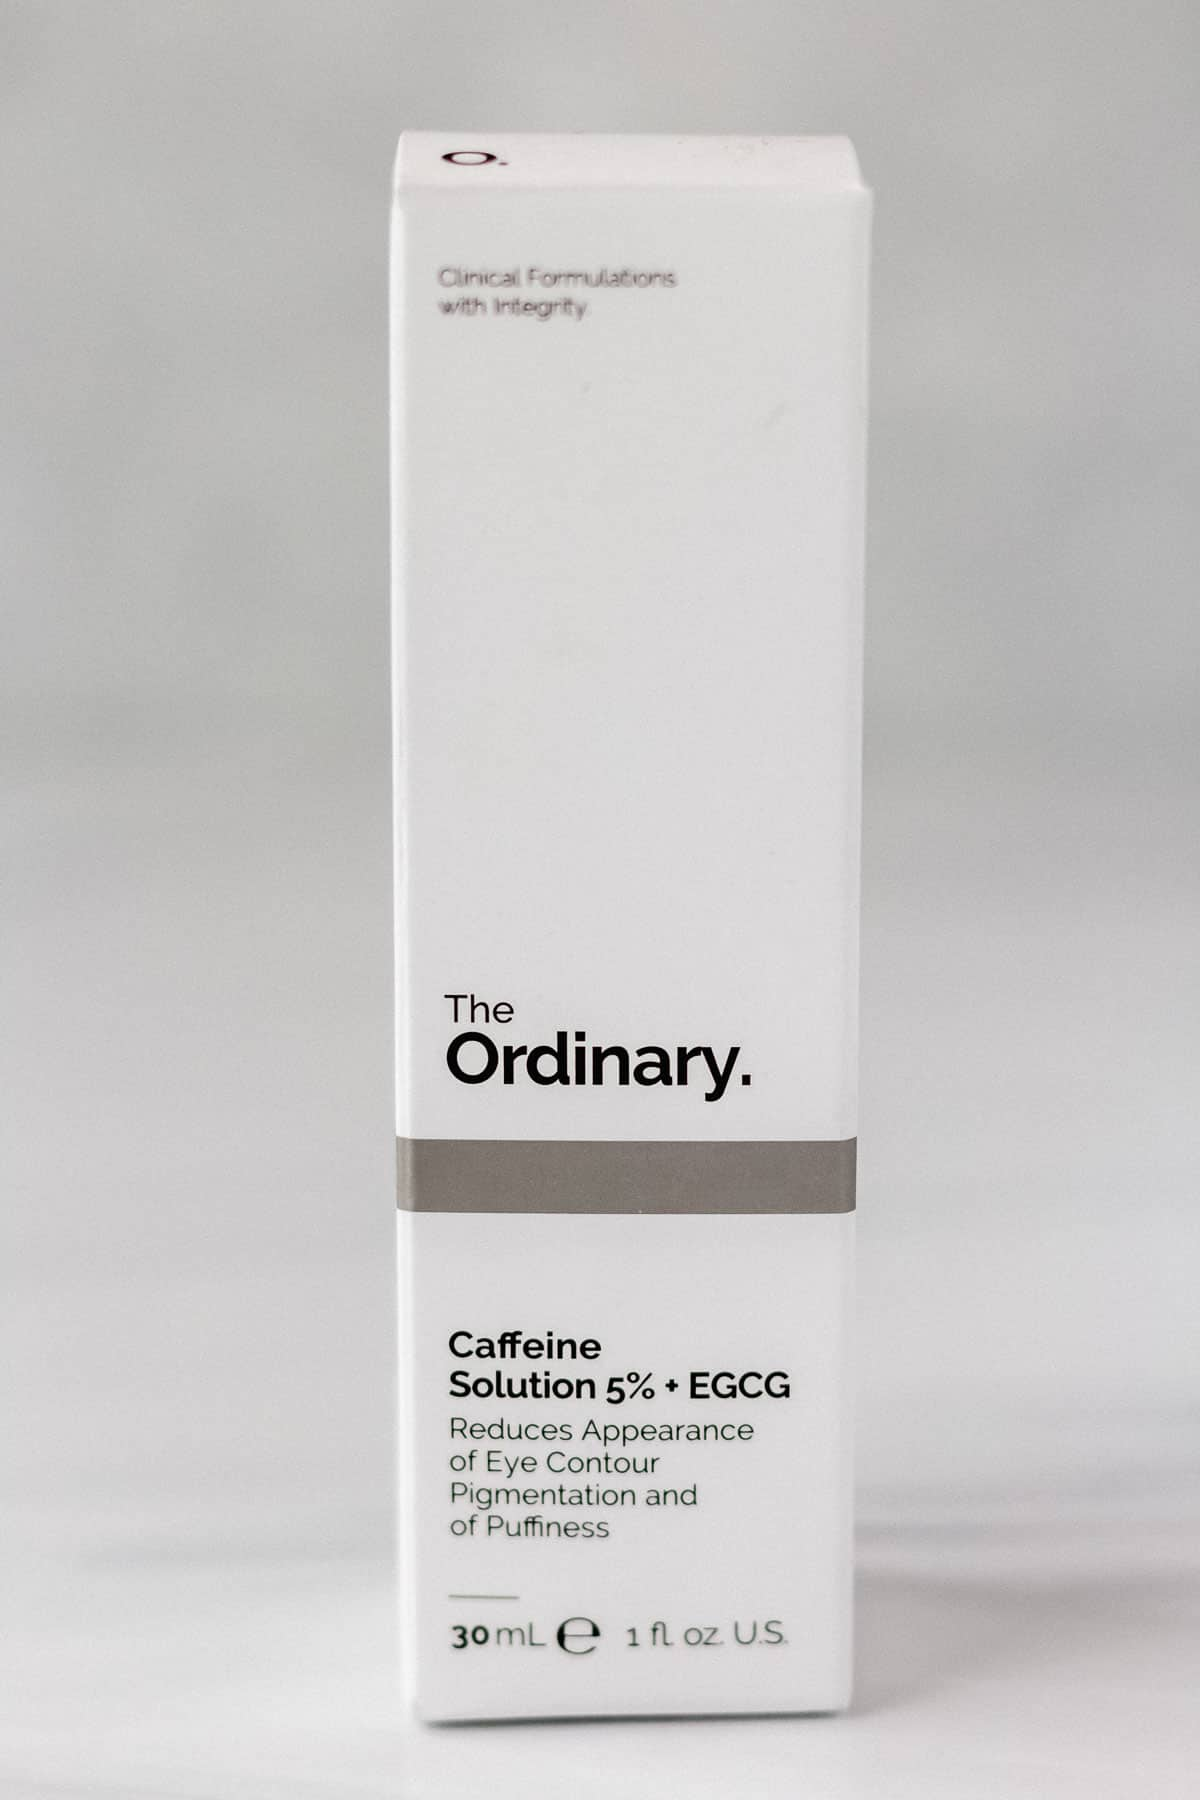 A box of The Ordinary Caffeine Solution 5% + EGCG on a gray background